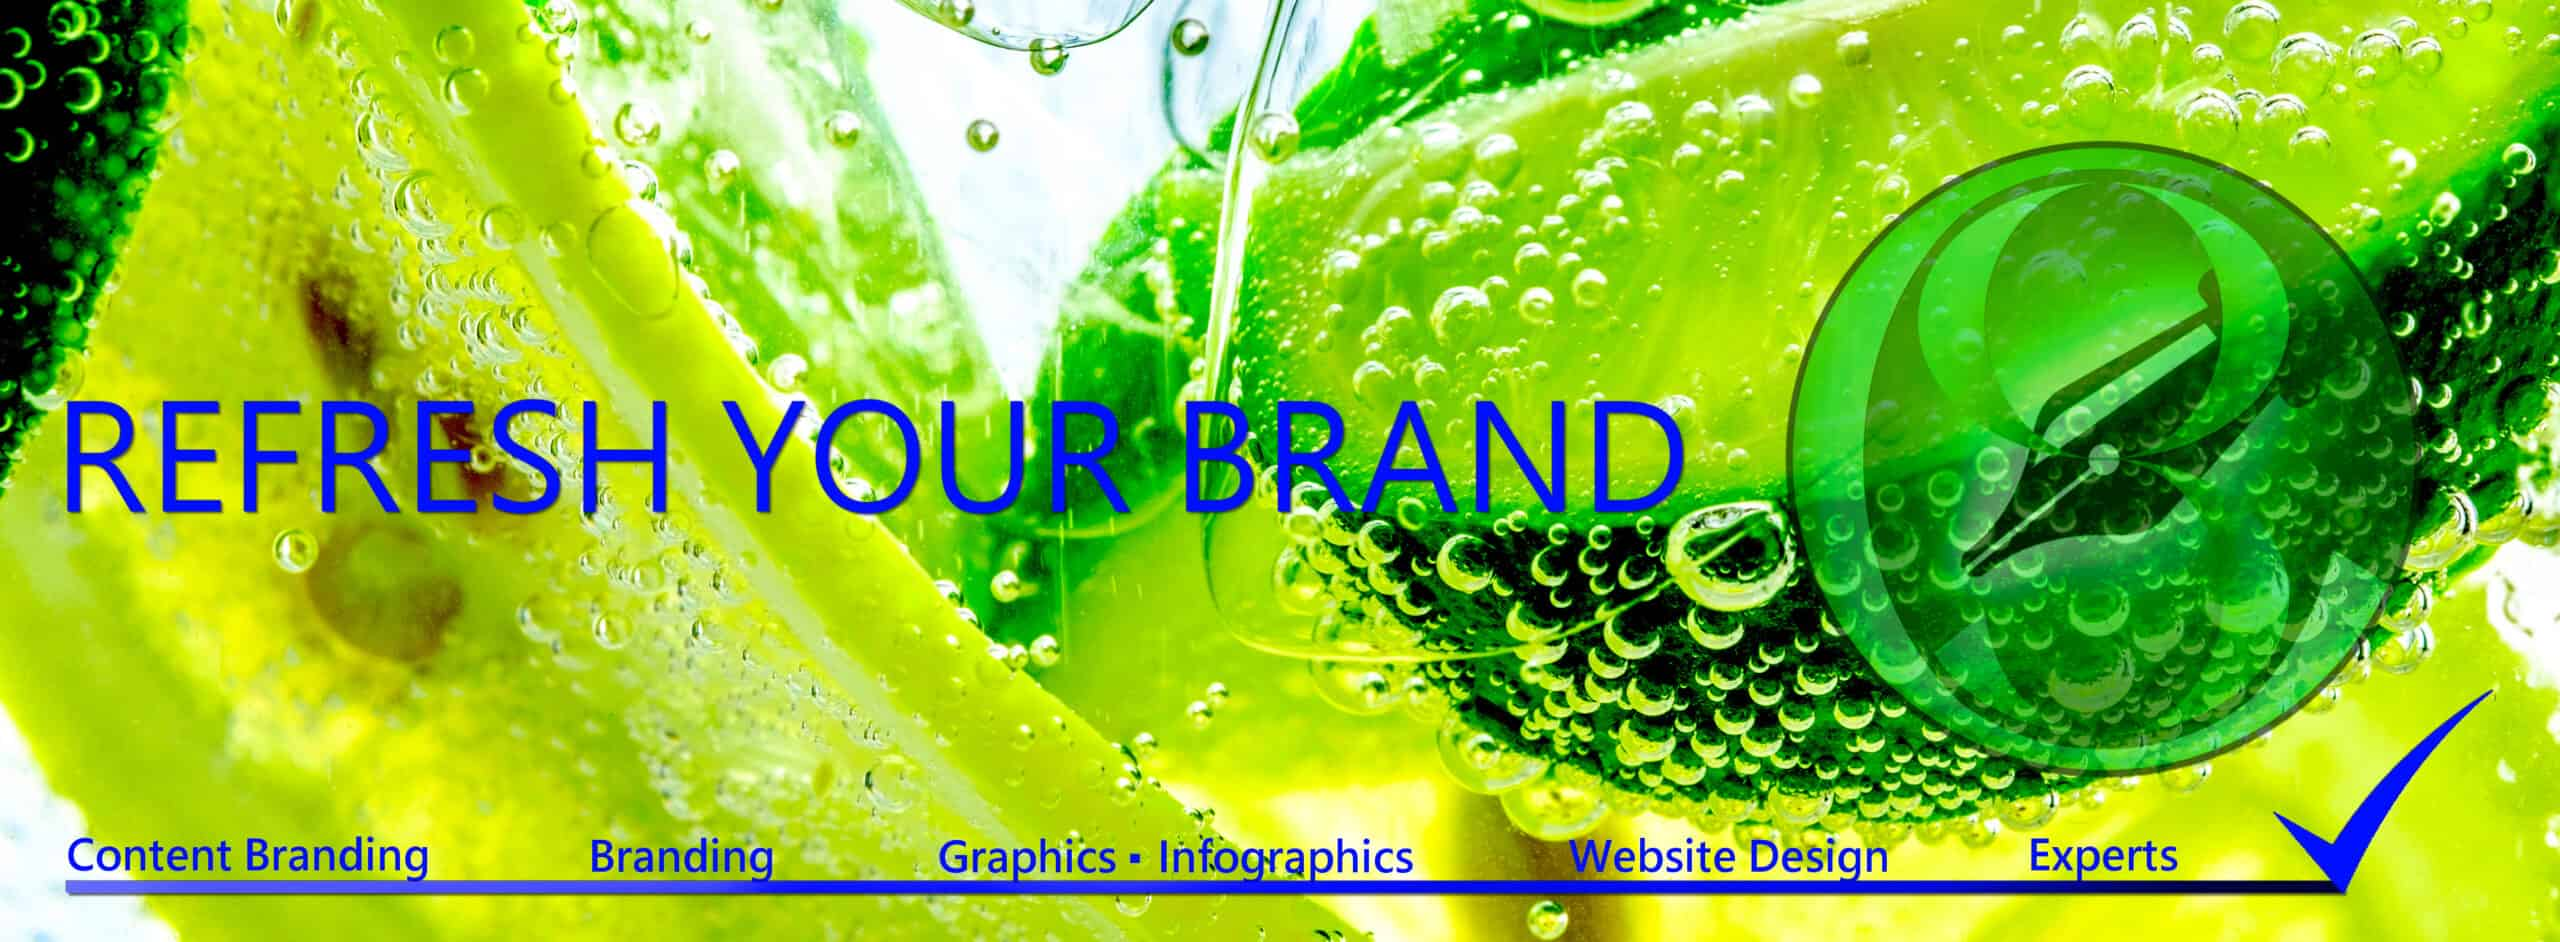 Refresh Your Brand Content Branding Solutions – Digital Content Marketing Is Our Business – Content Branding Branding and Design Logos Websites BD Marketing and Sales Media Denver CO